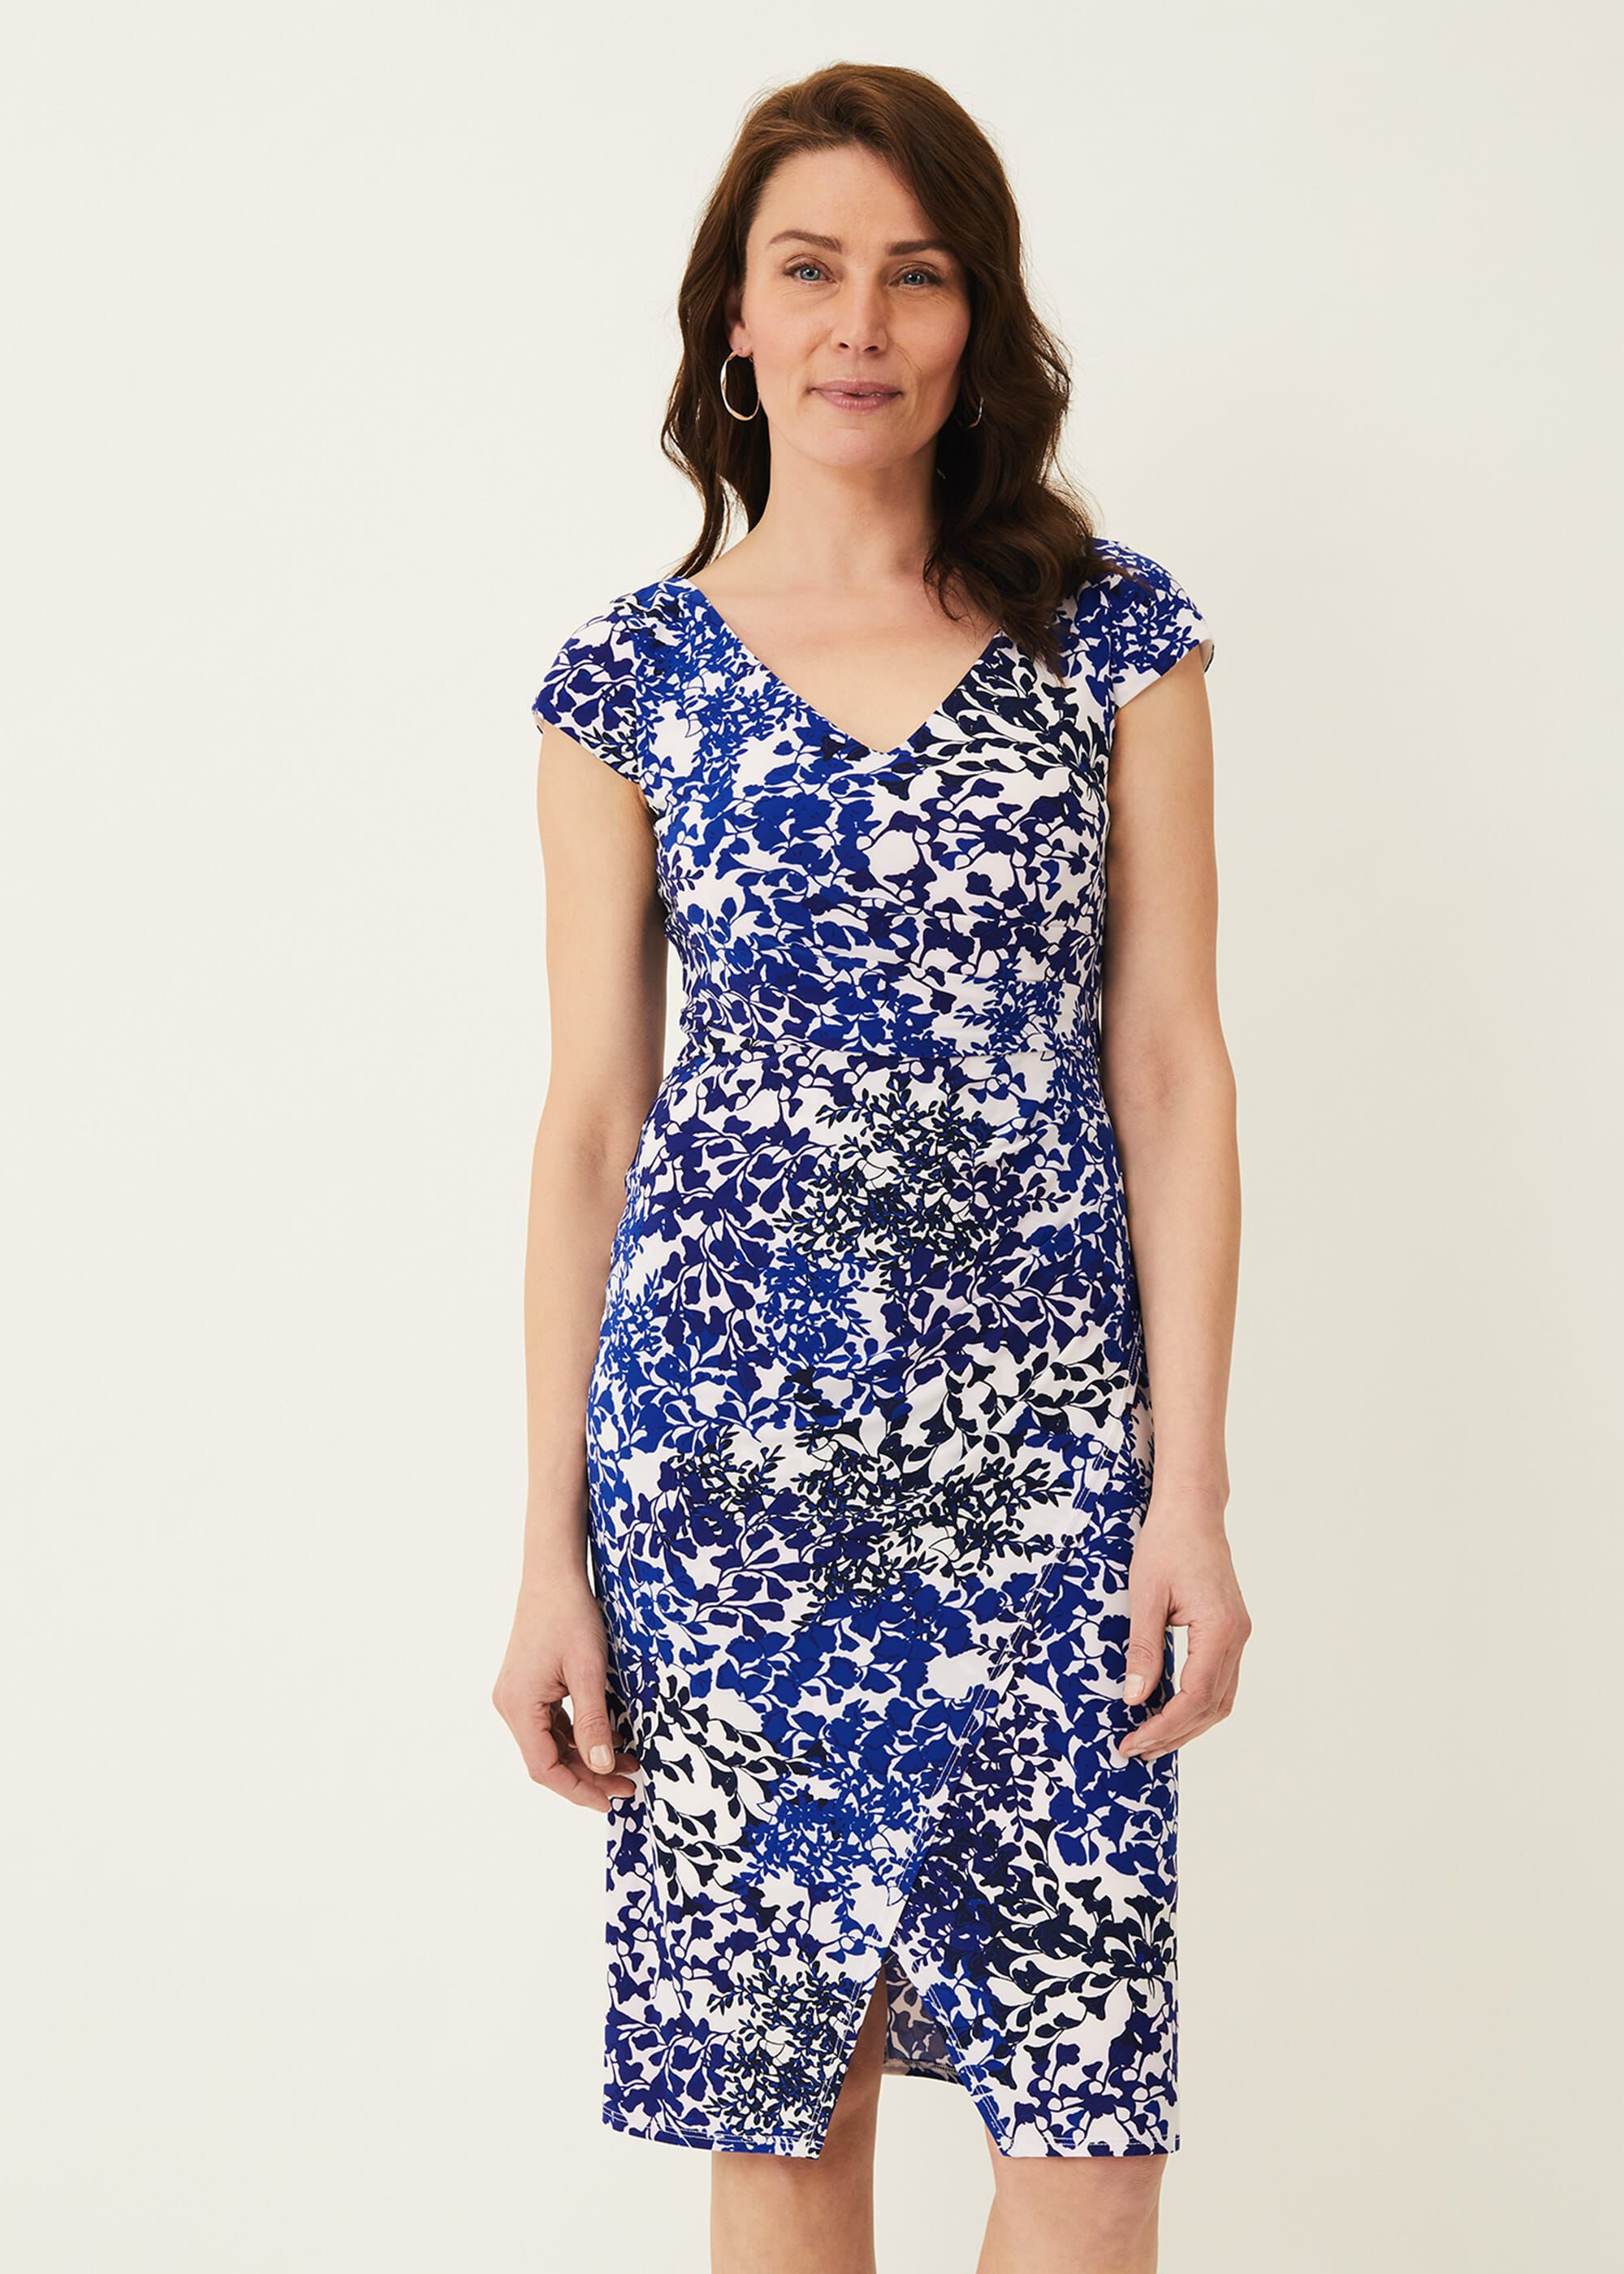 Phase Eight Arielle Printed Slinky Jersey Dress, Blue, Occasion Dress